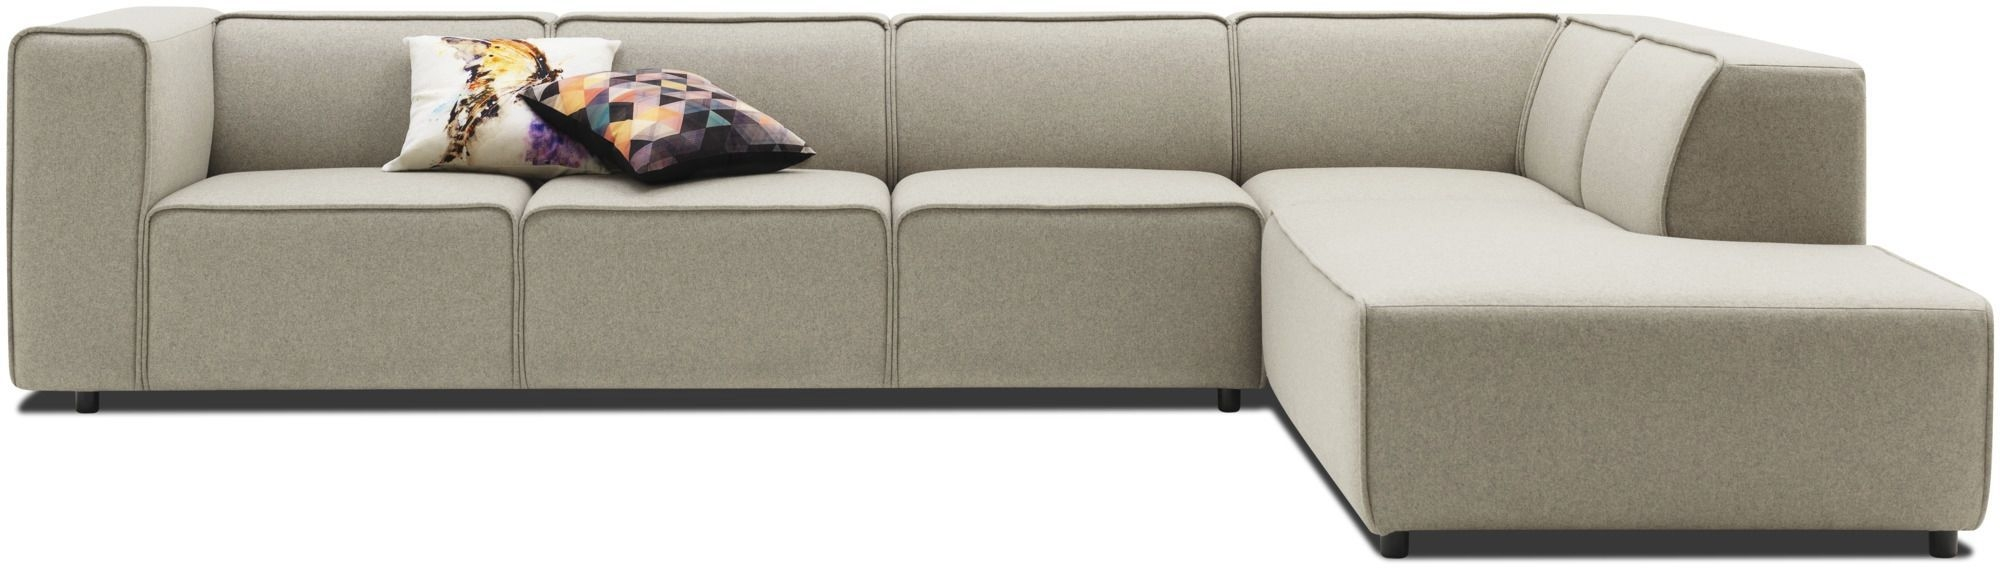 Corner Sofa Modular Contemporary Leather Carmo Anders With Regard To Modular Corner Sofas (Image 4 of 15)